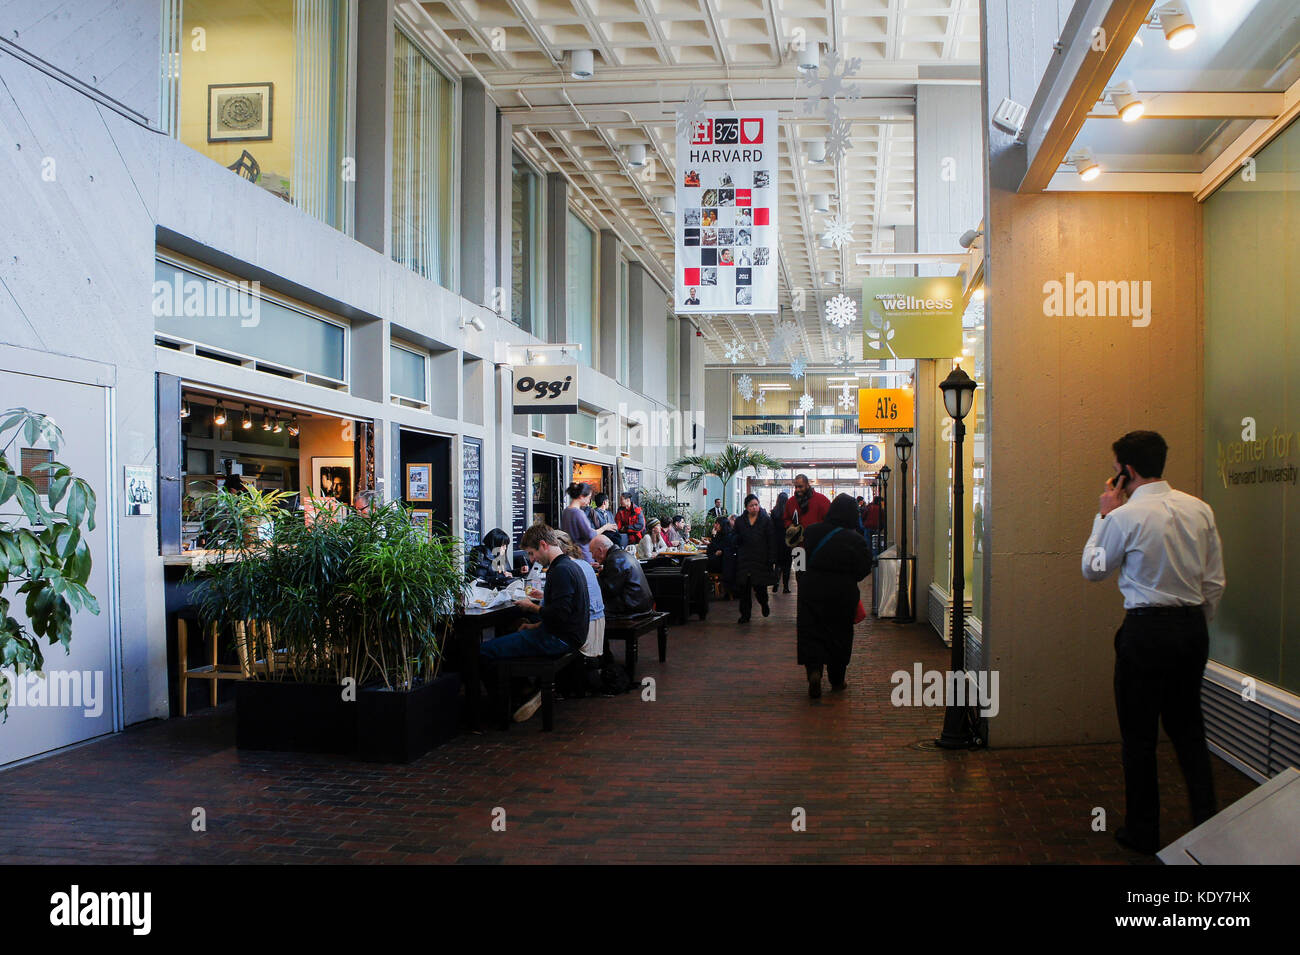 Boston, JAN 26: Food court in Harvard University on JAN 26, 2012 at Harvard Square, Boston, Massachusetts, Boston, - Stock Image